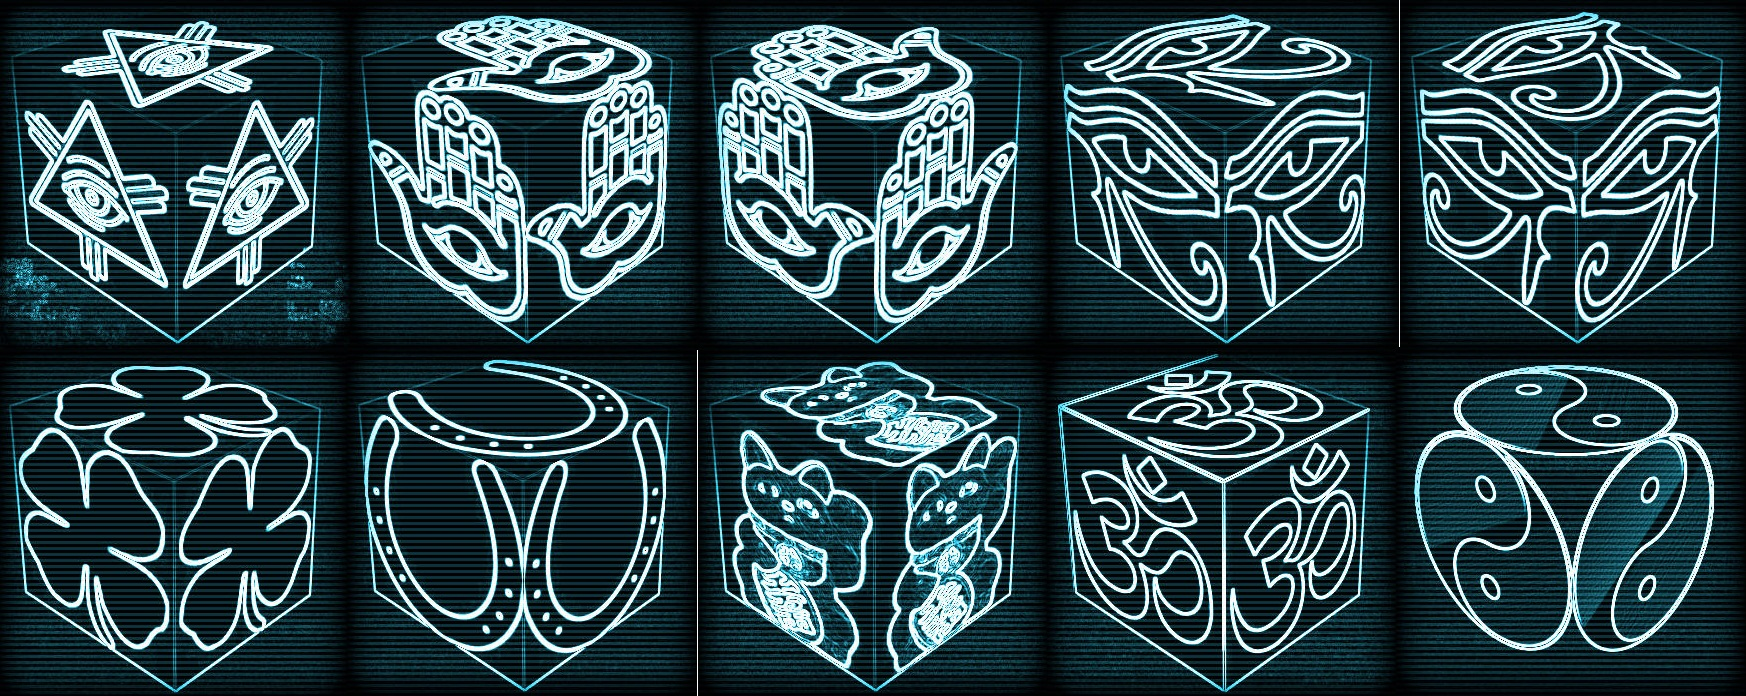 cube, 3d cube, lucky dice, luck symbols, Cyber Vision Eye of Fatima, Cyber Vision Eye of Providence, Cyber Vision Four Leaf Clover, Cyber Vision Horseshoe, Cyber Vision Maneki Neko